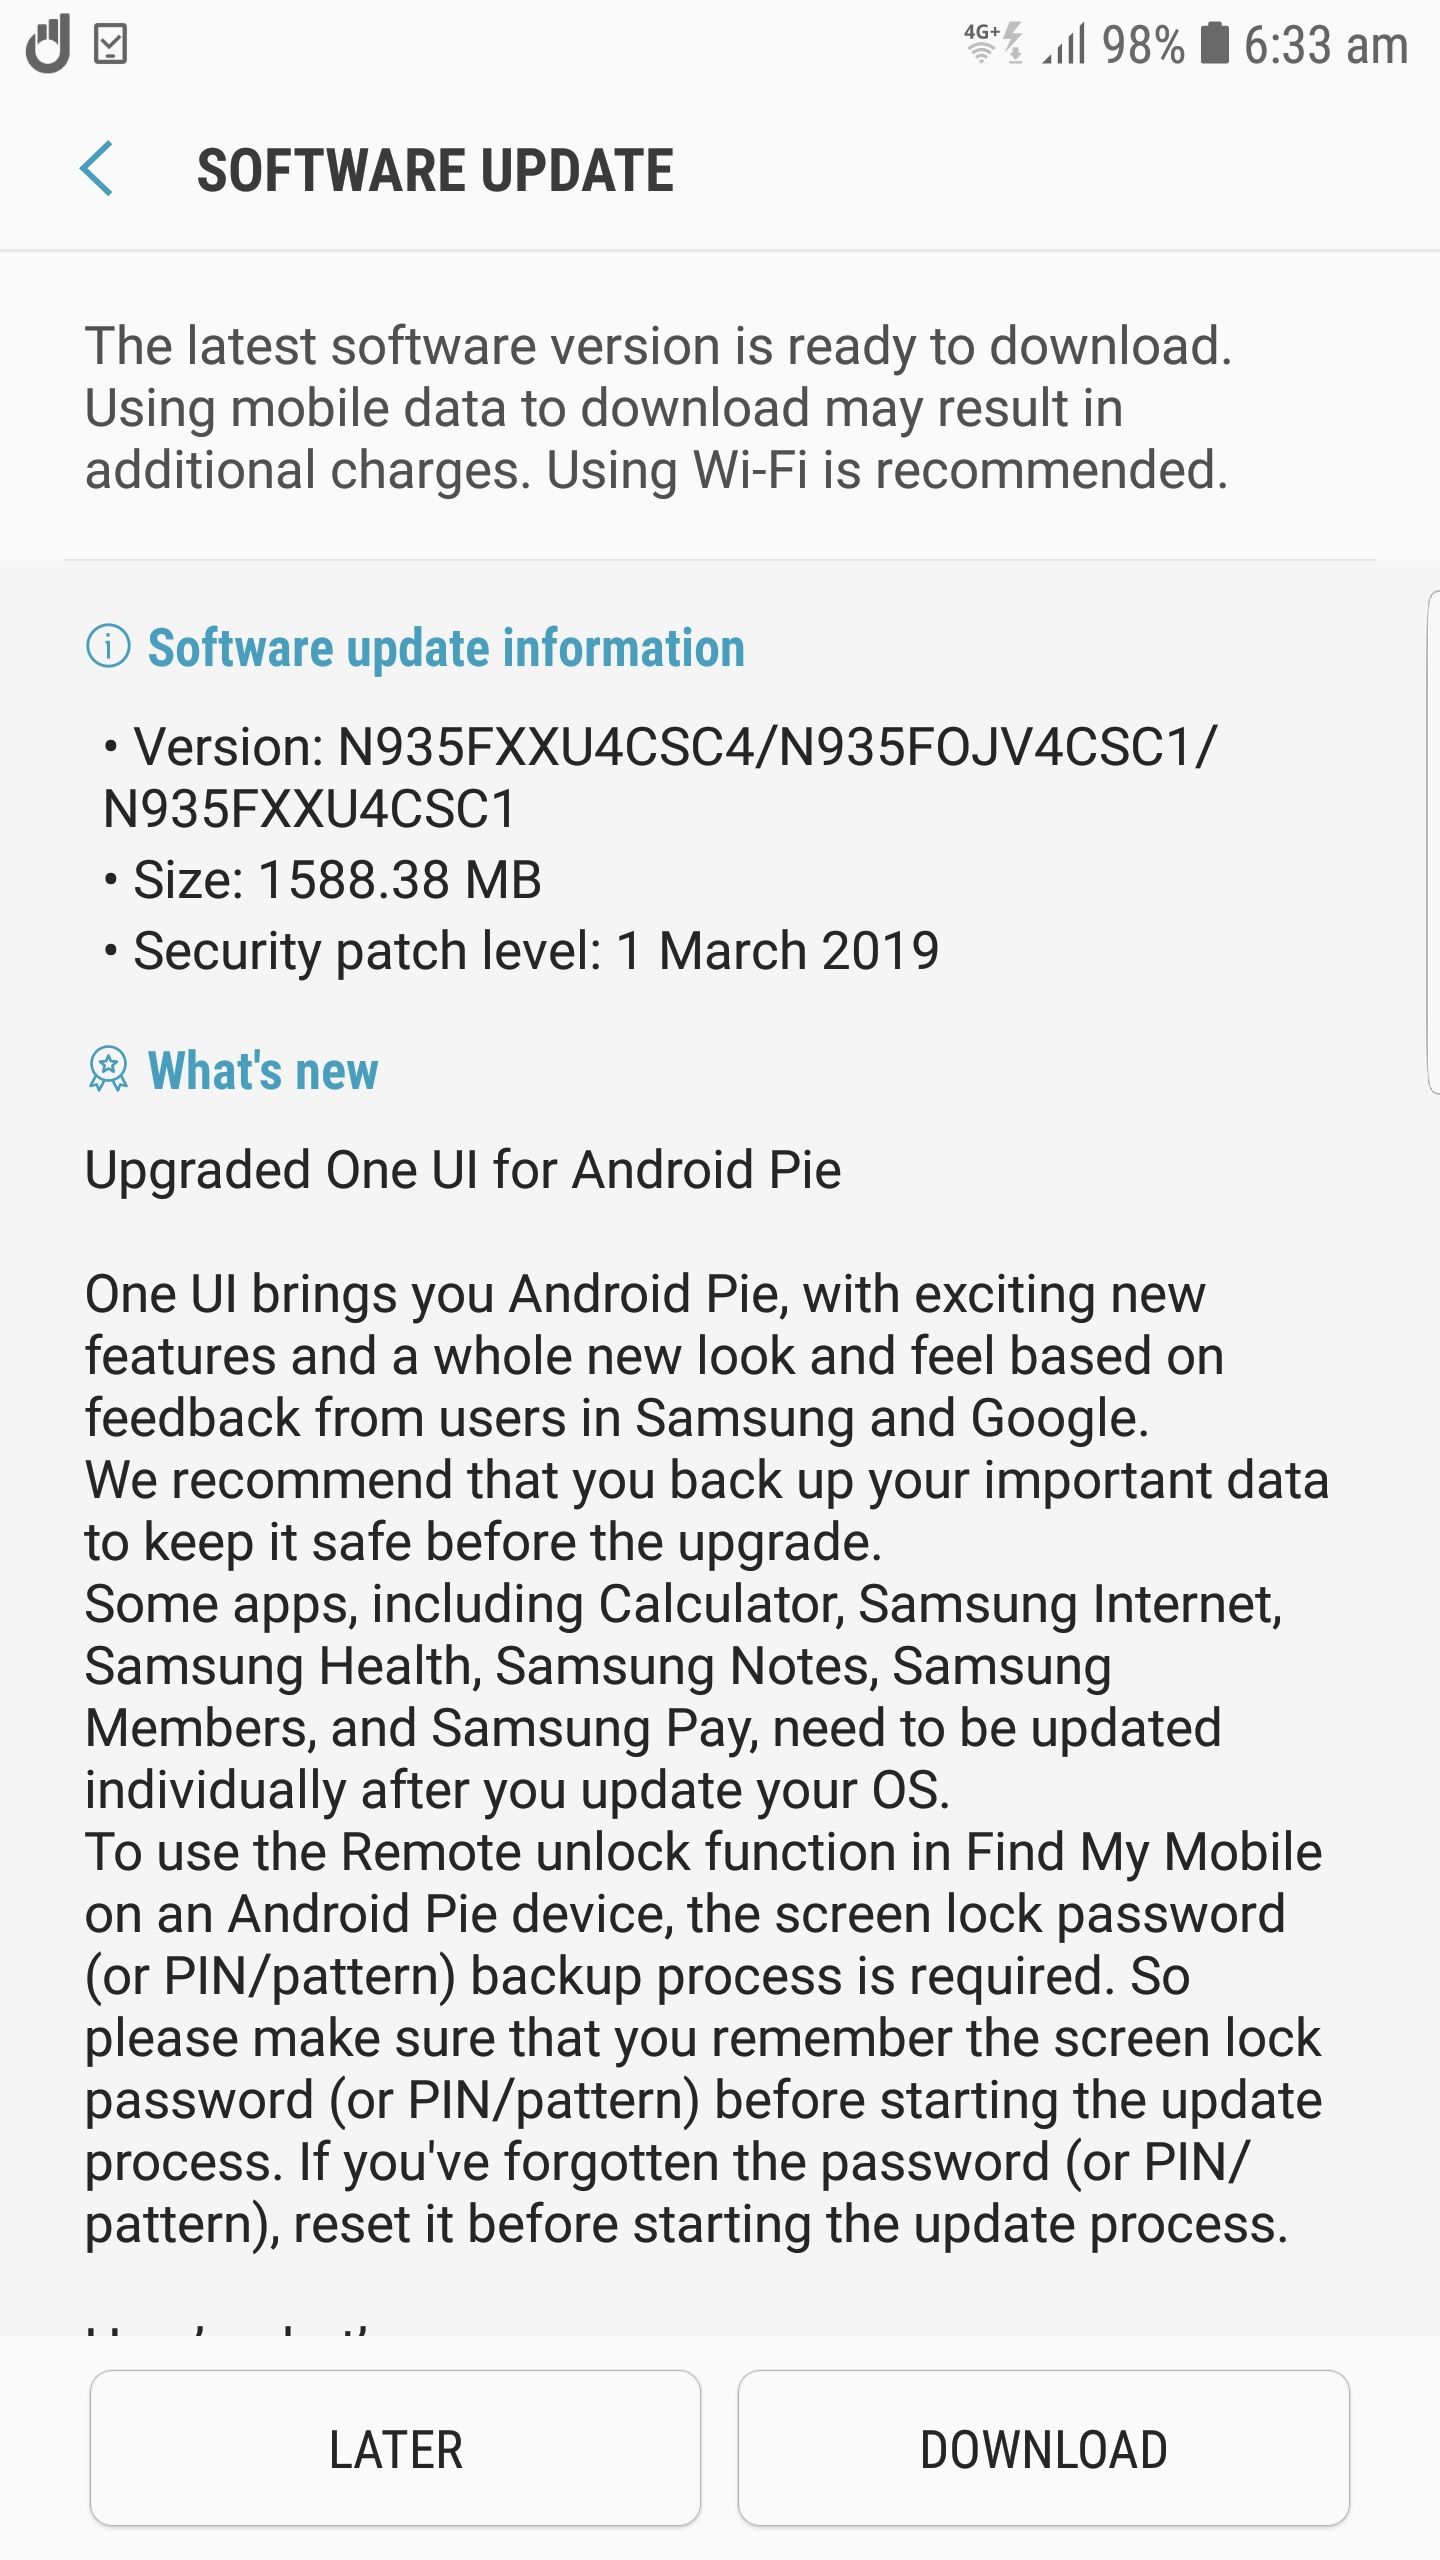 Galaxy Note FE Android Pie update has been released - SamMobile